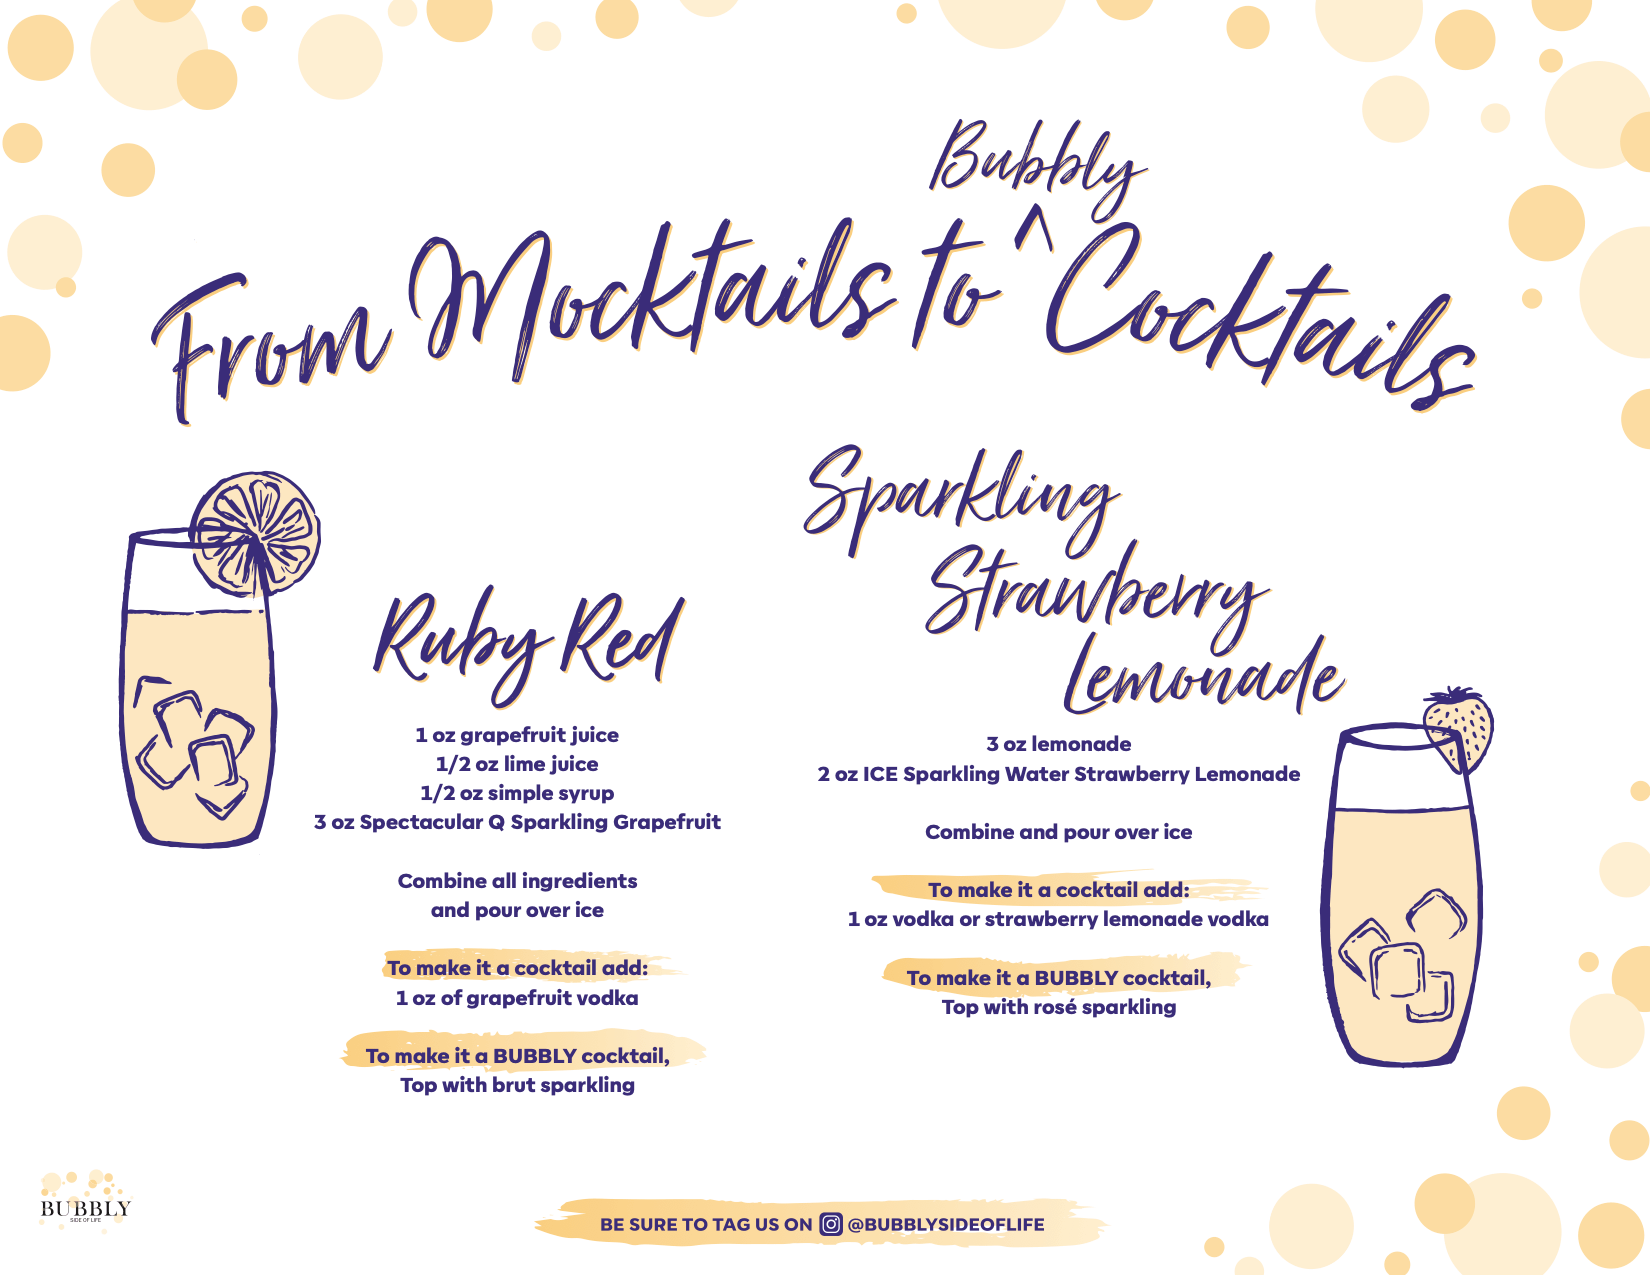 Celebrating May Holidays with 2 awesome new mocktails and cocktails!